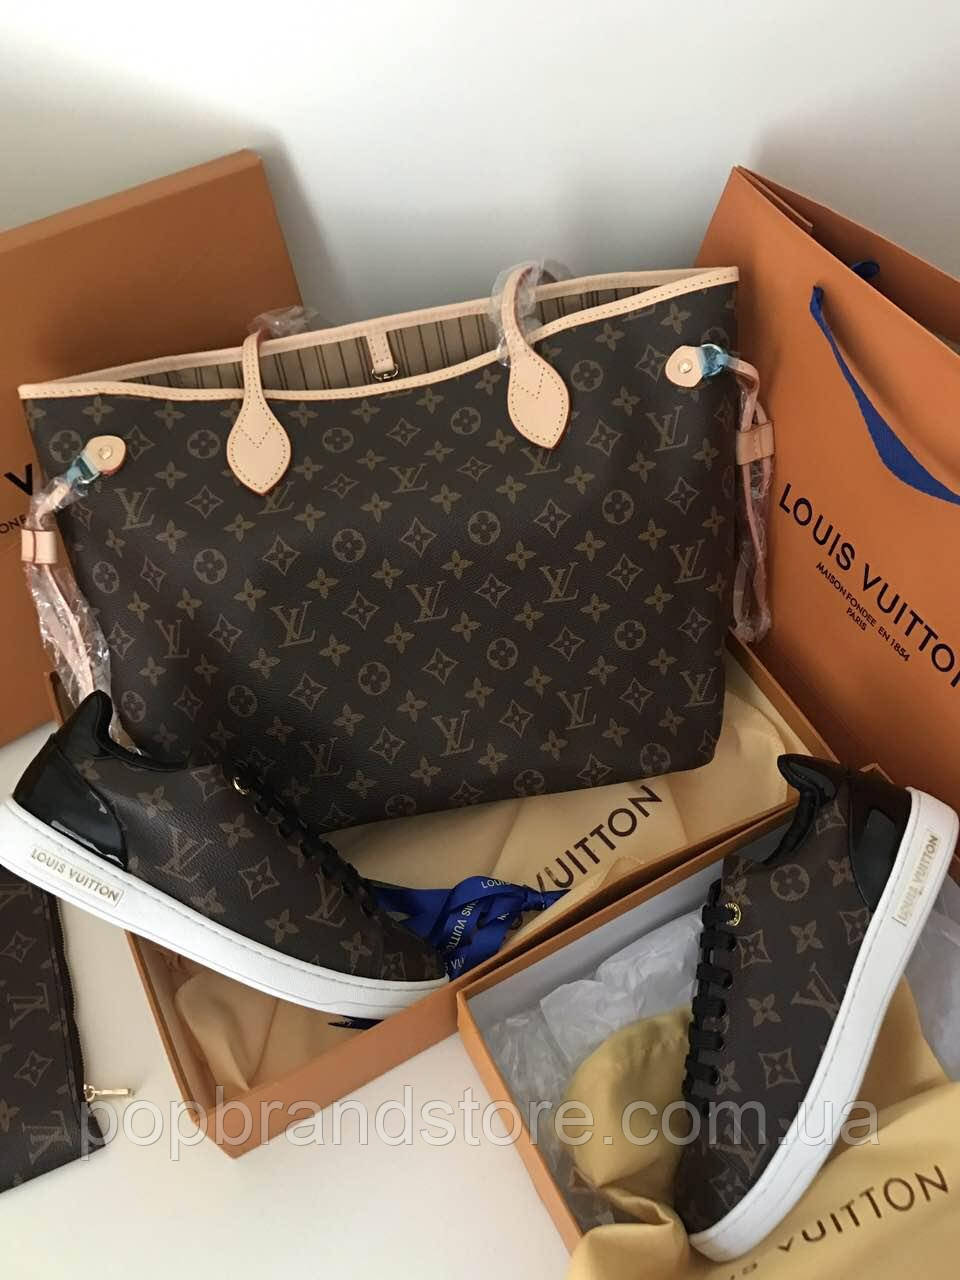 Популярная сумка Louis Vuitton Neverfull  32 cм (реплика), фото 1